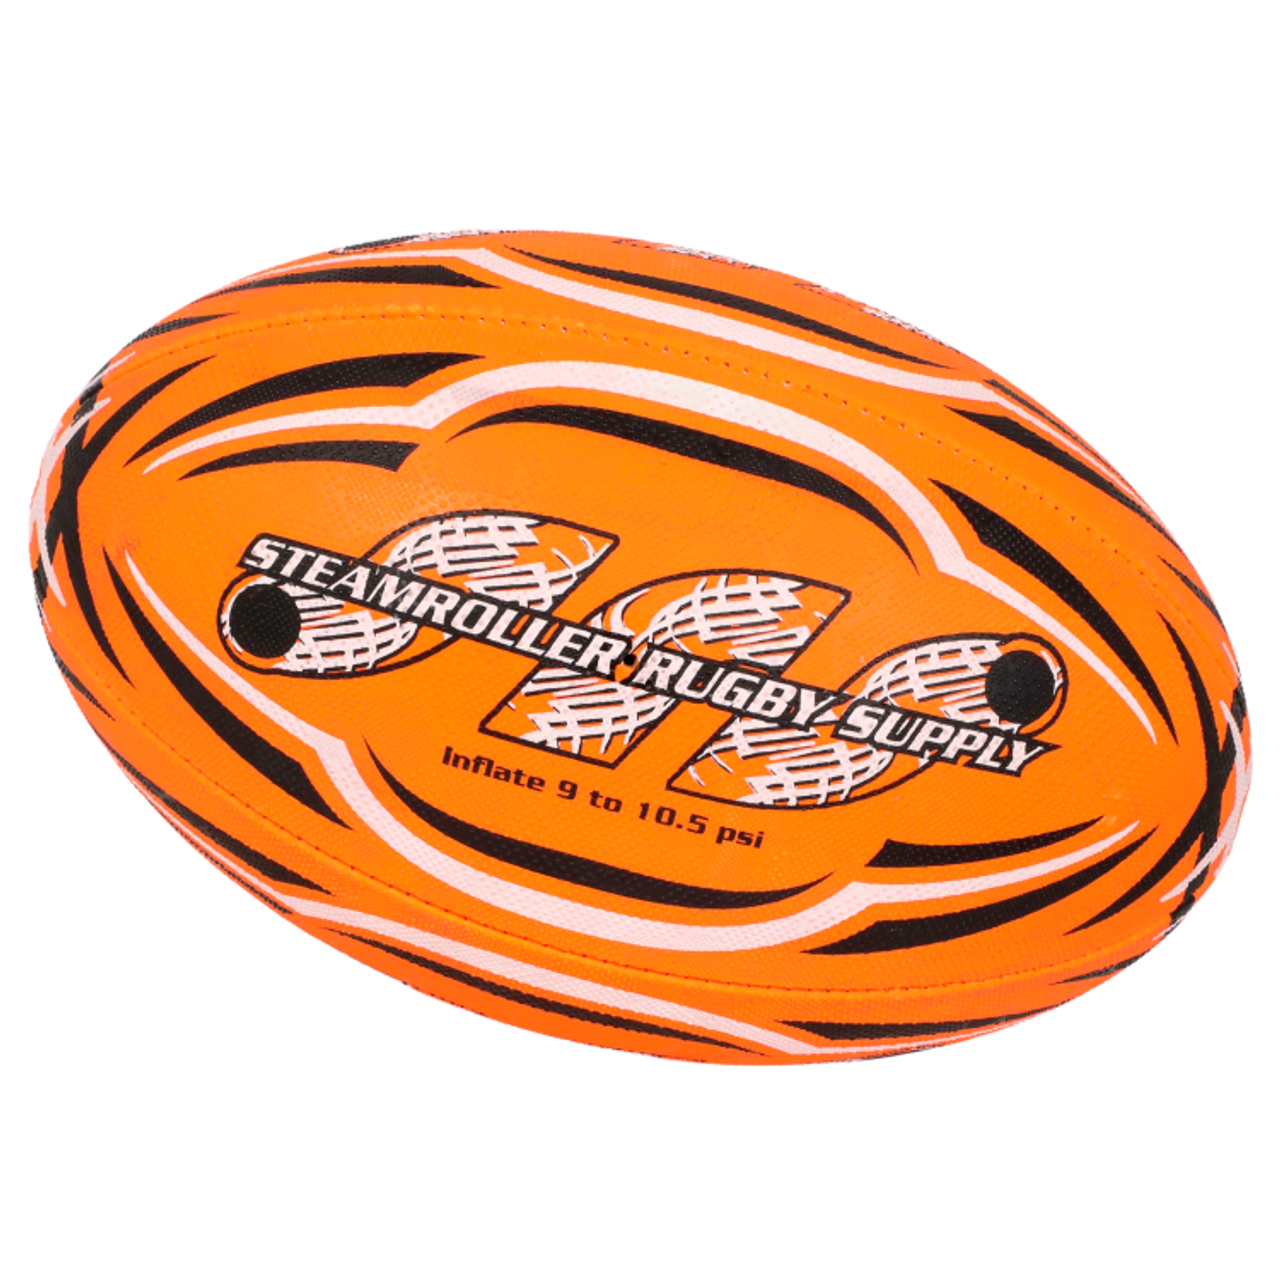 Fluoro Orange Size 5 Rugby Ball